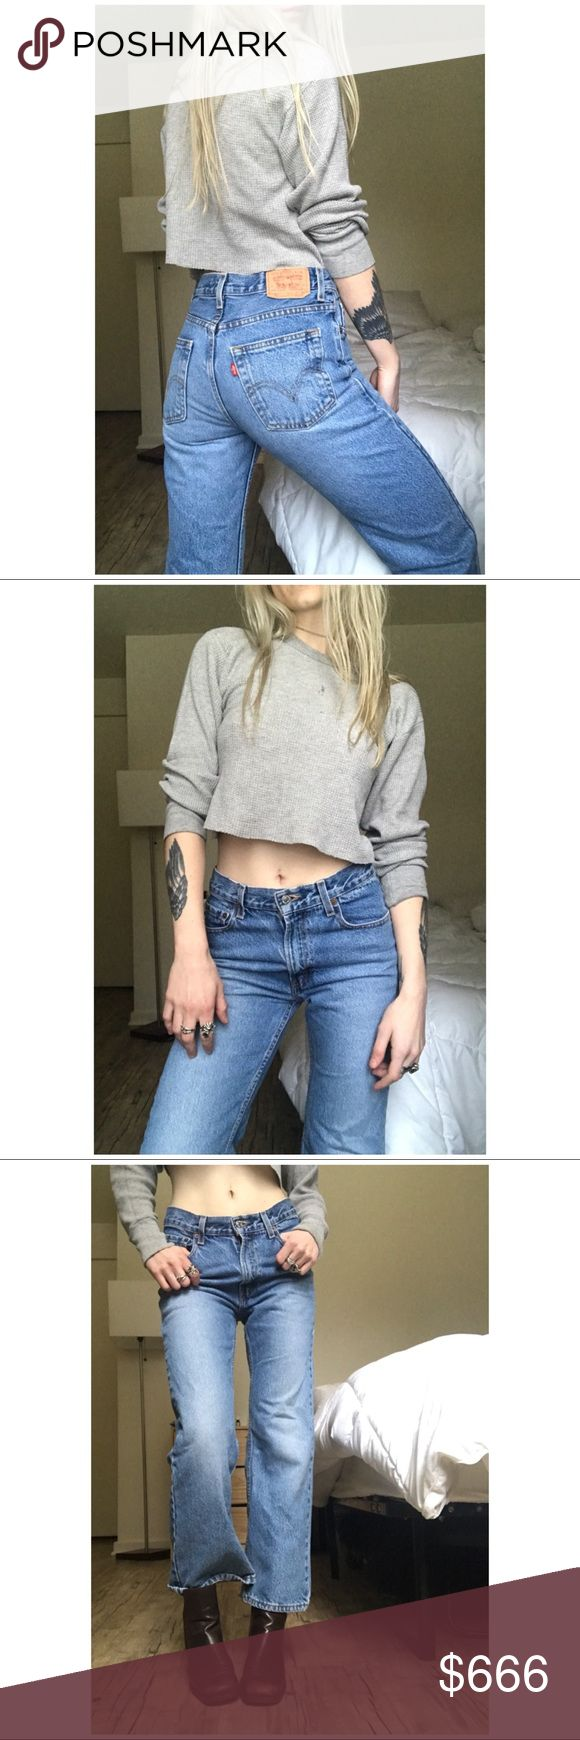 """🐰// Perfect Wash 5027 Levi's // + Good worn-in condition - please observe photos + Tagged as a size 14 - fits like a WOMEN'S size 0-2 (Model has a 23-24"""" waist for reference these fit slightly slouchy)  + Mid rise   WAIST: 26""""  RISE:9.5"""" LENGTH: 37""""  INSEAM:29"""" HIPS:36""""  ** This item is priced for quick sale - because of this I will not be accepting offers.**   IF you see the bunny it is buy one get one FREE! Just add your likes to a bundle and I will offer + Levi's Pants Boot Cut & Flare"""